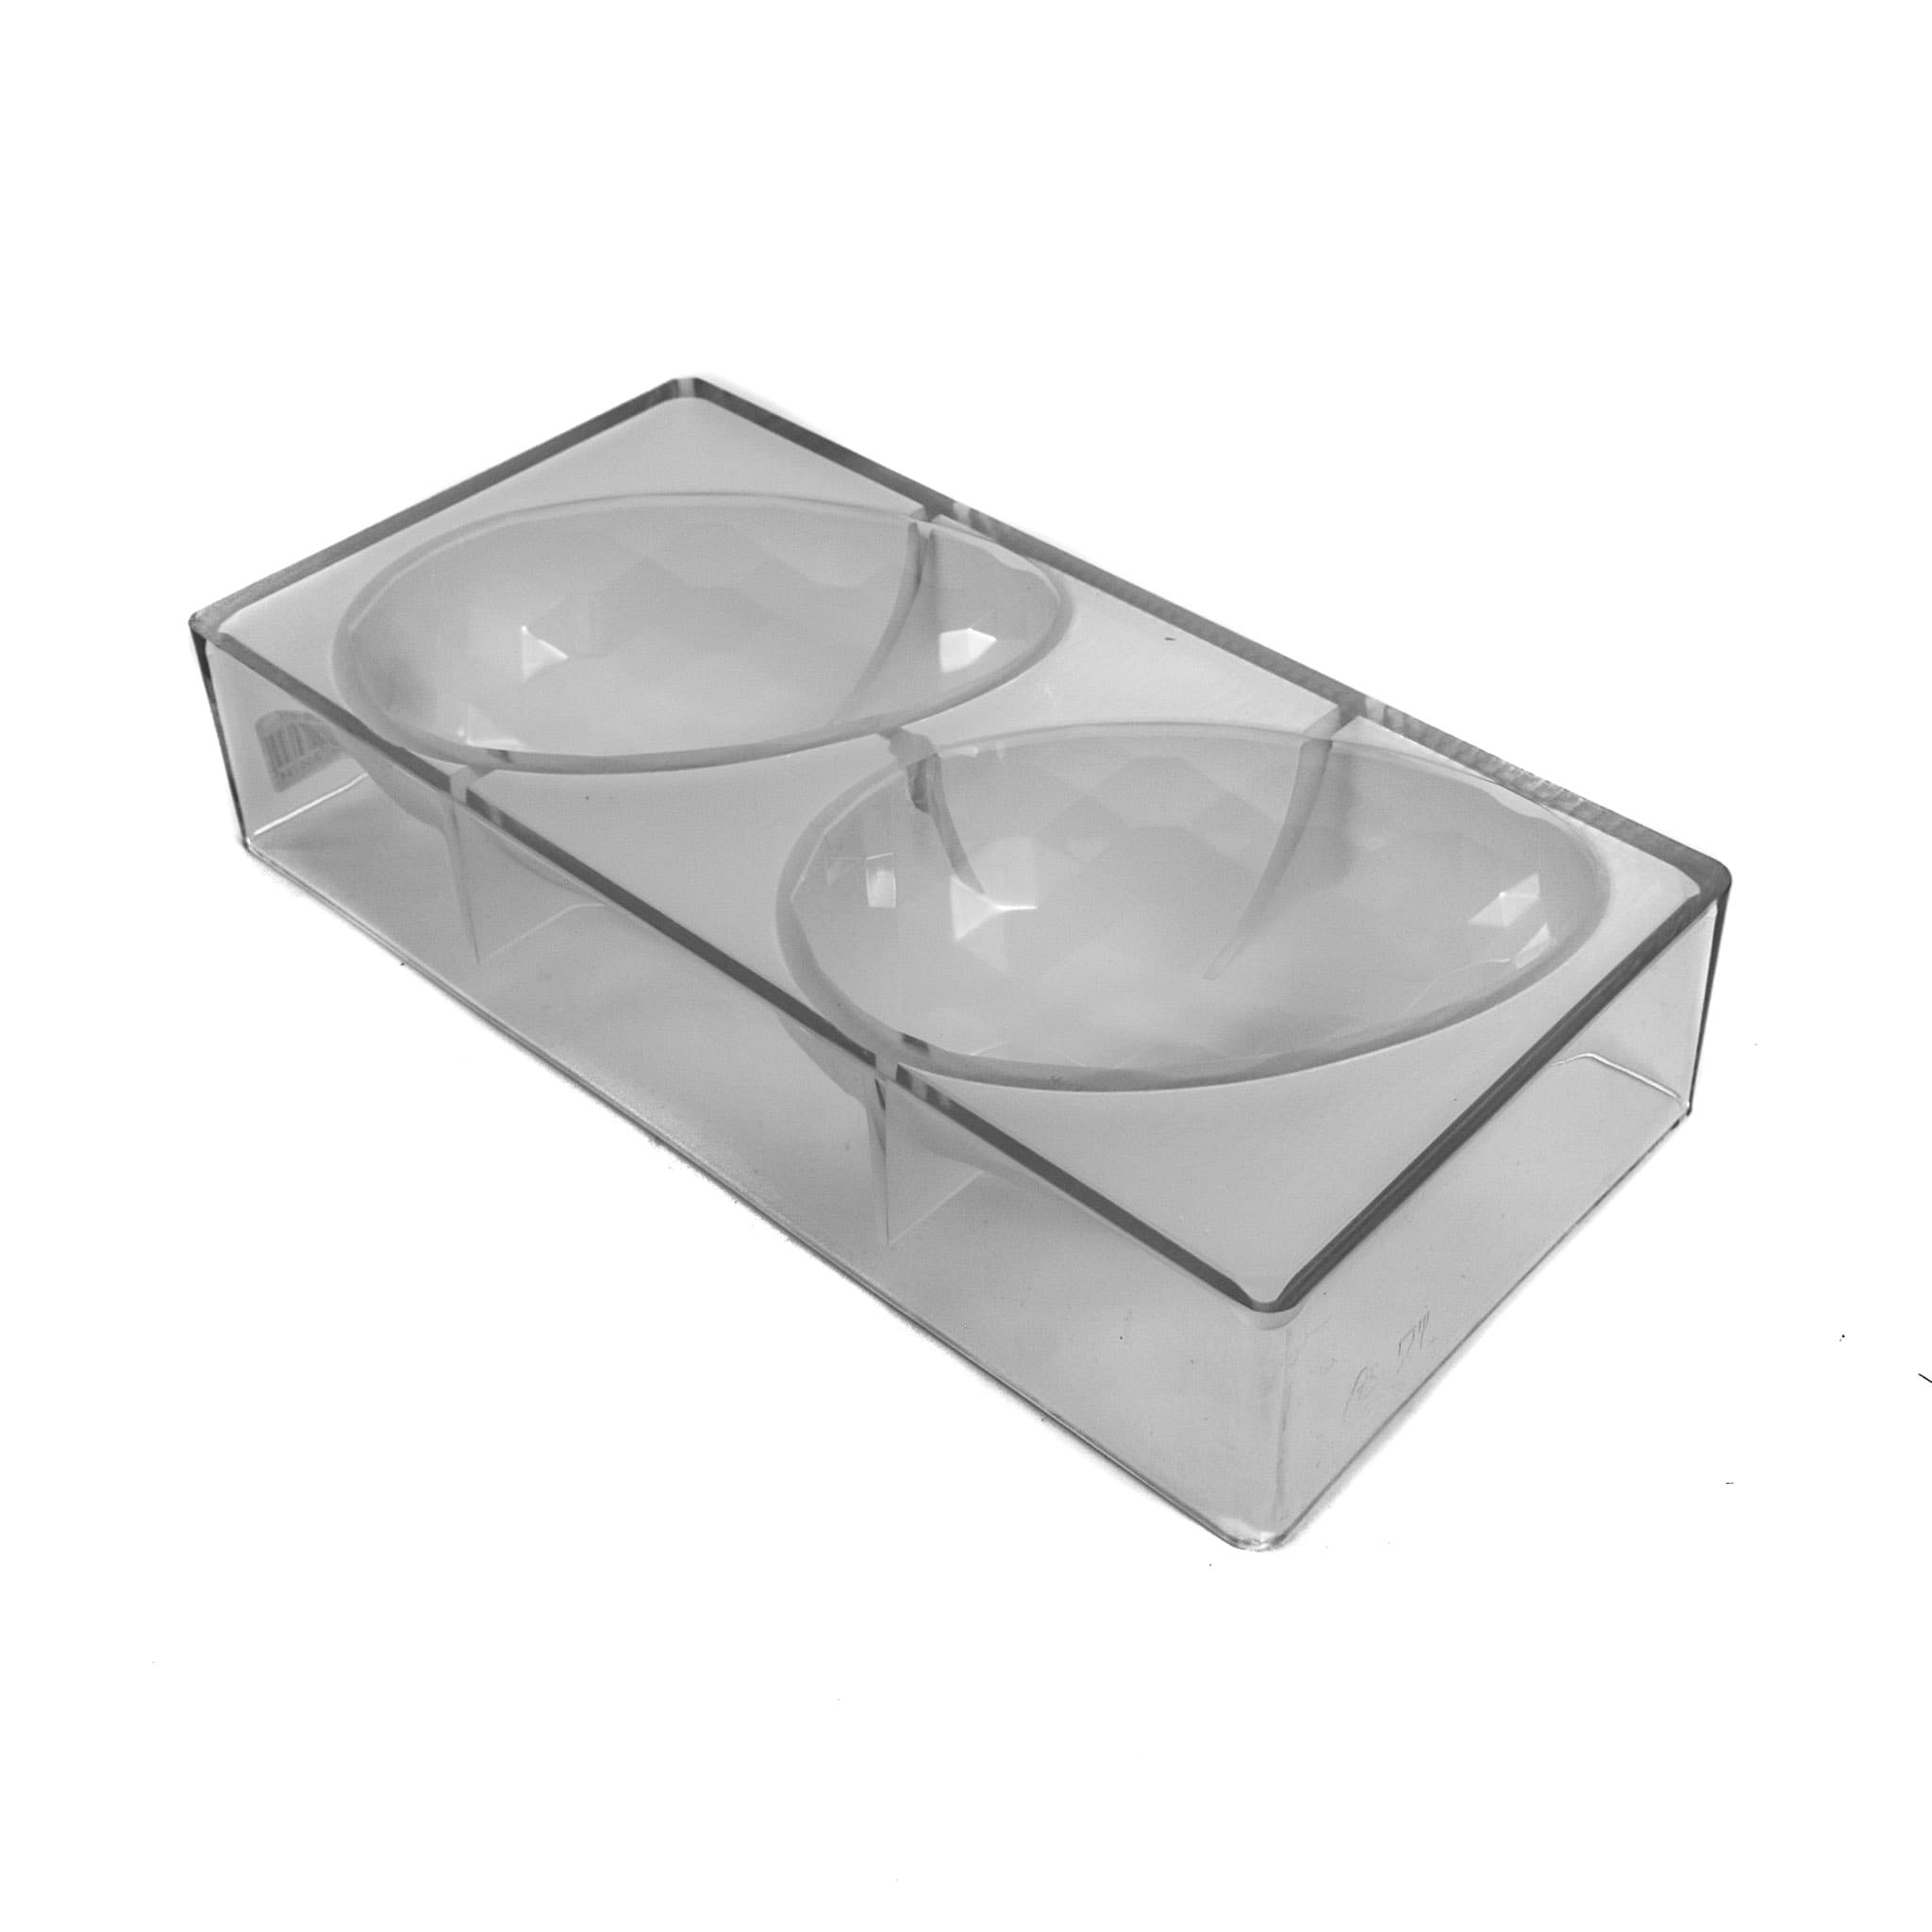 Polycarbonate Diamond Chocolate Easter Egg Mould Large